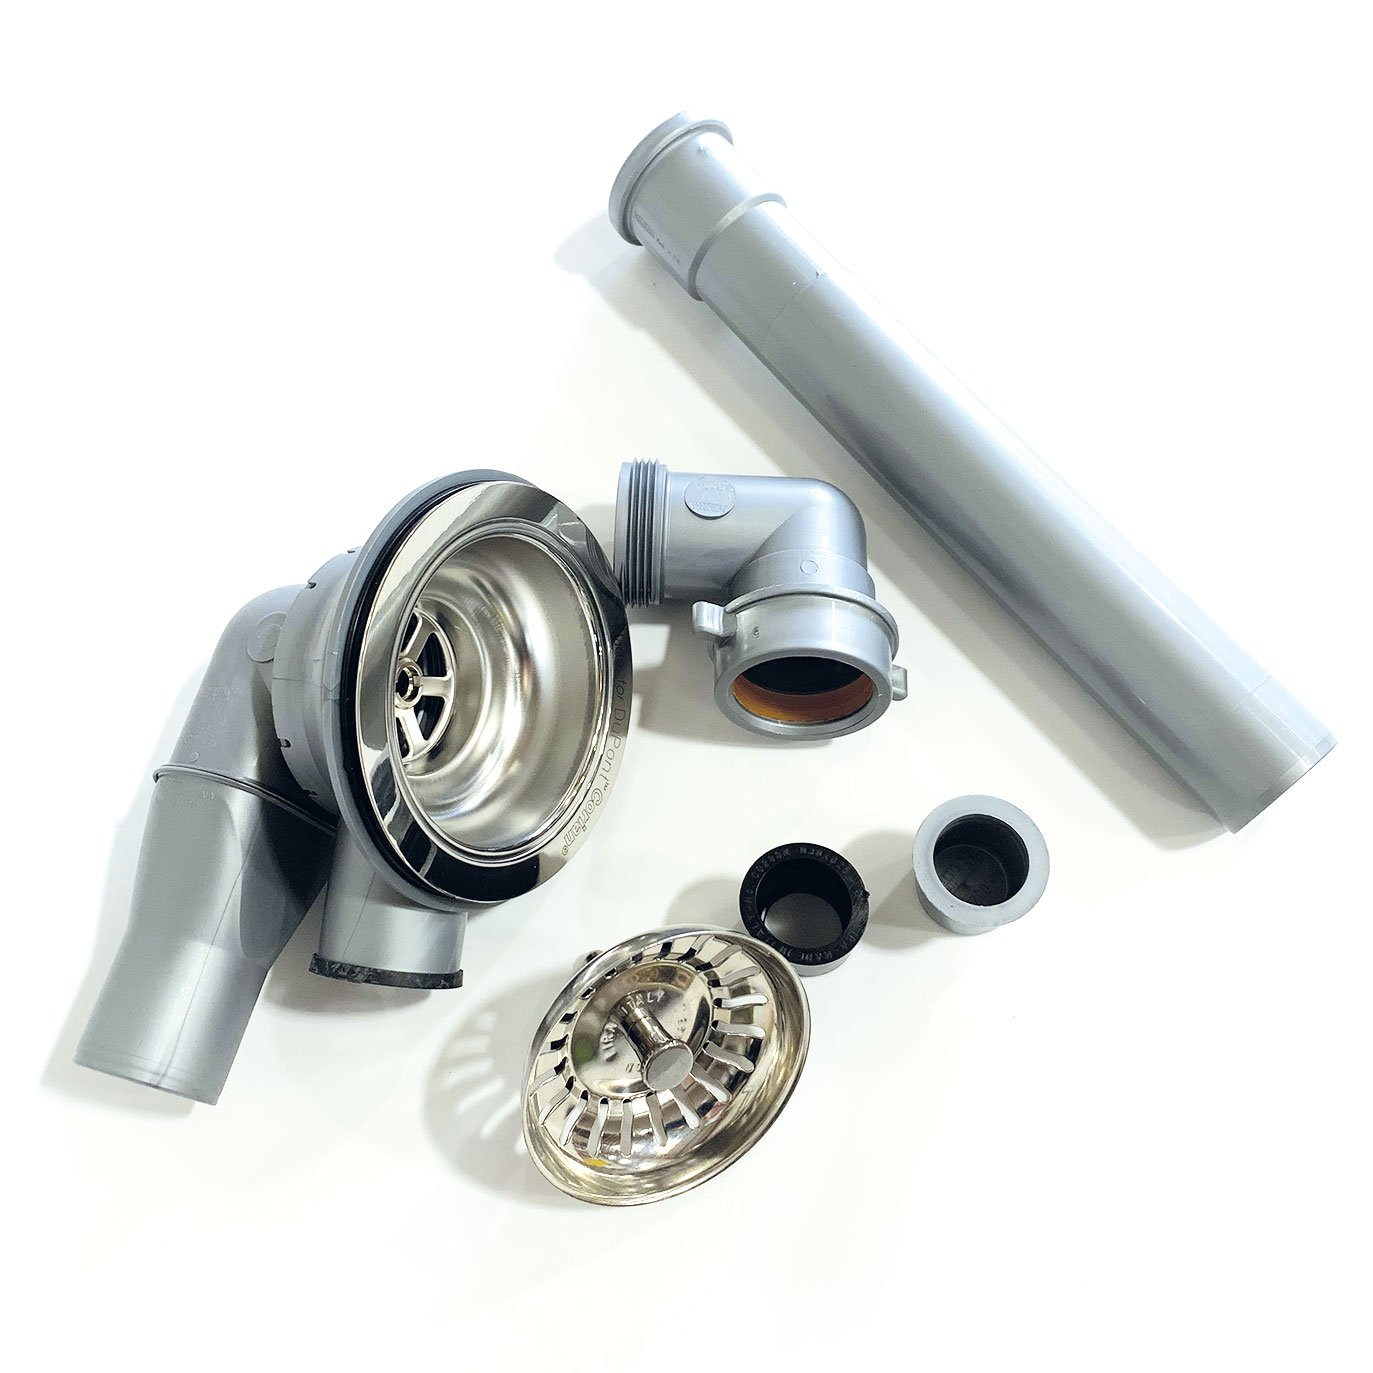 Image of Lira Manual Plumbing Kit